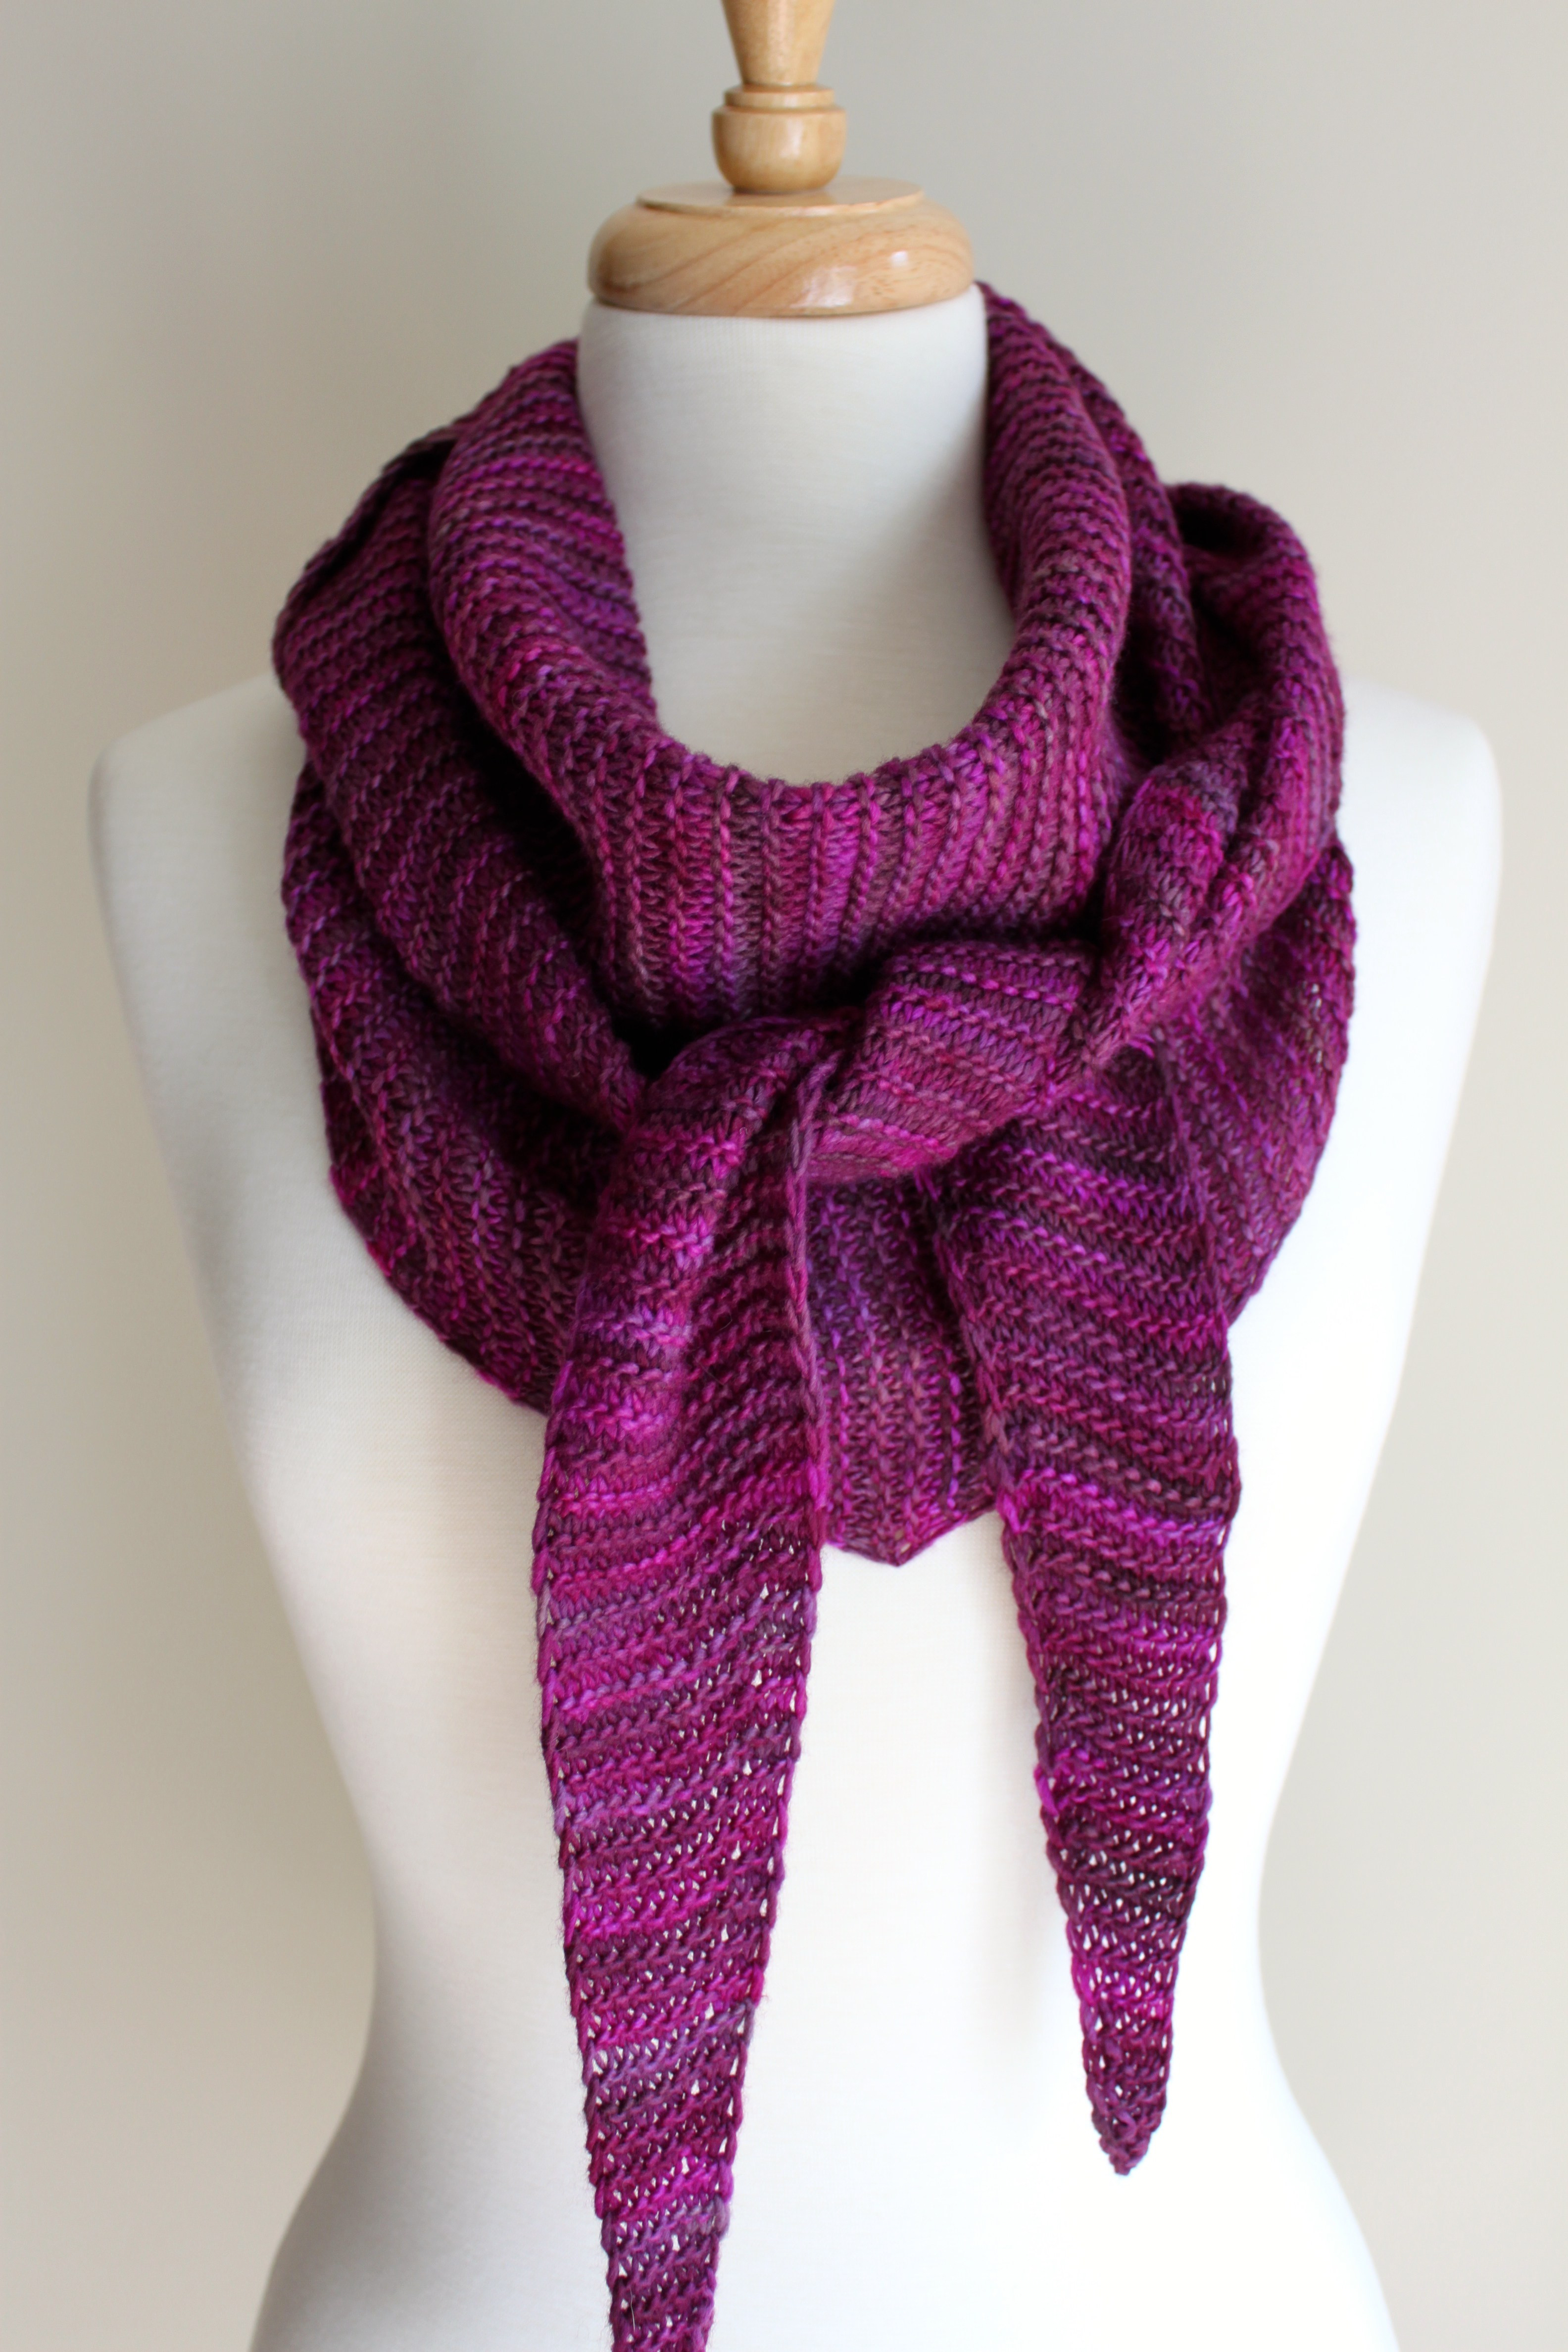 Scarf Knitting Patterns Awesome Free Knitting Patterns totally Triangular Scarf Leah Of Wonderful 41 Pictures Scarf Knitting Patterns